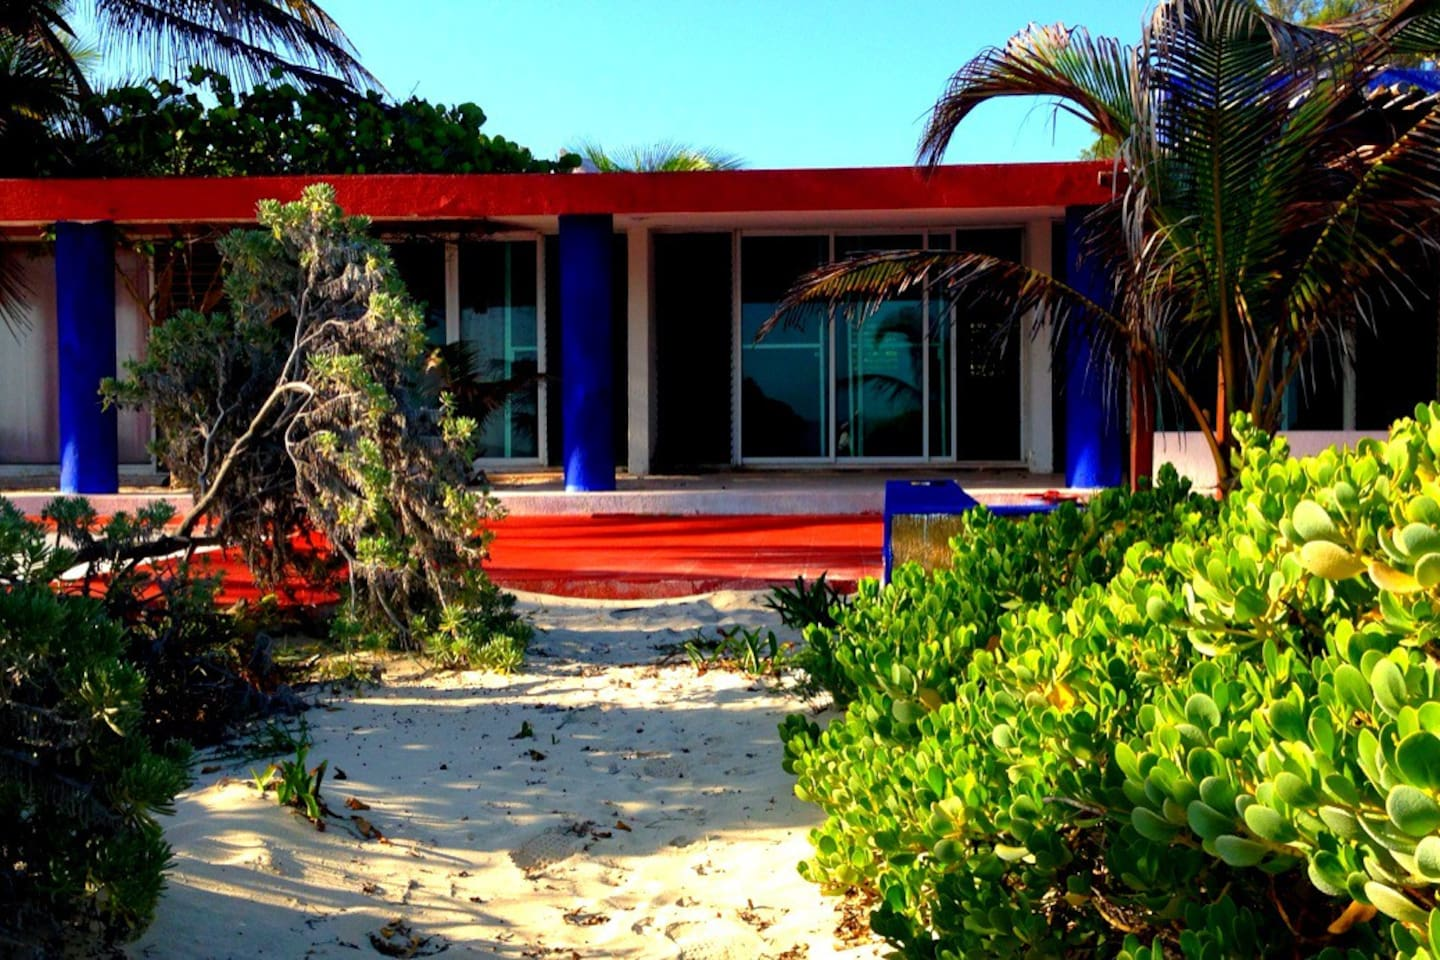 BeachFront, literally 5 steps from the sea. 2 bedrooms, living room and diner table overlooking the beach.